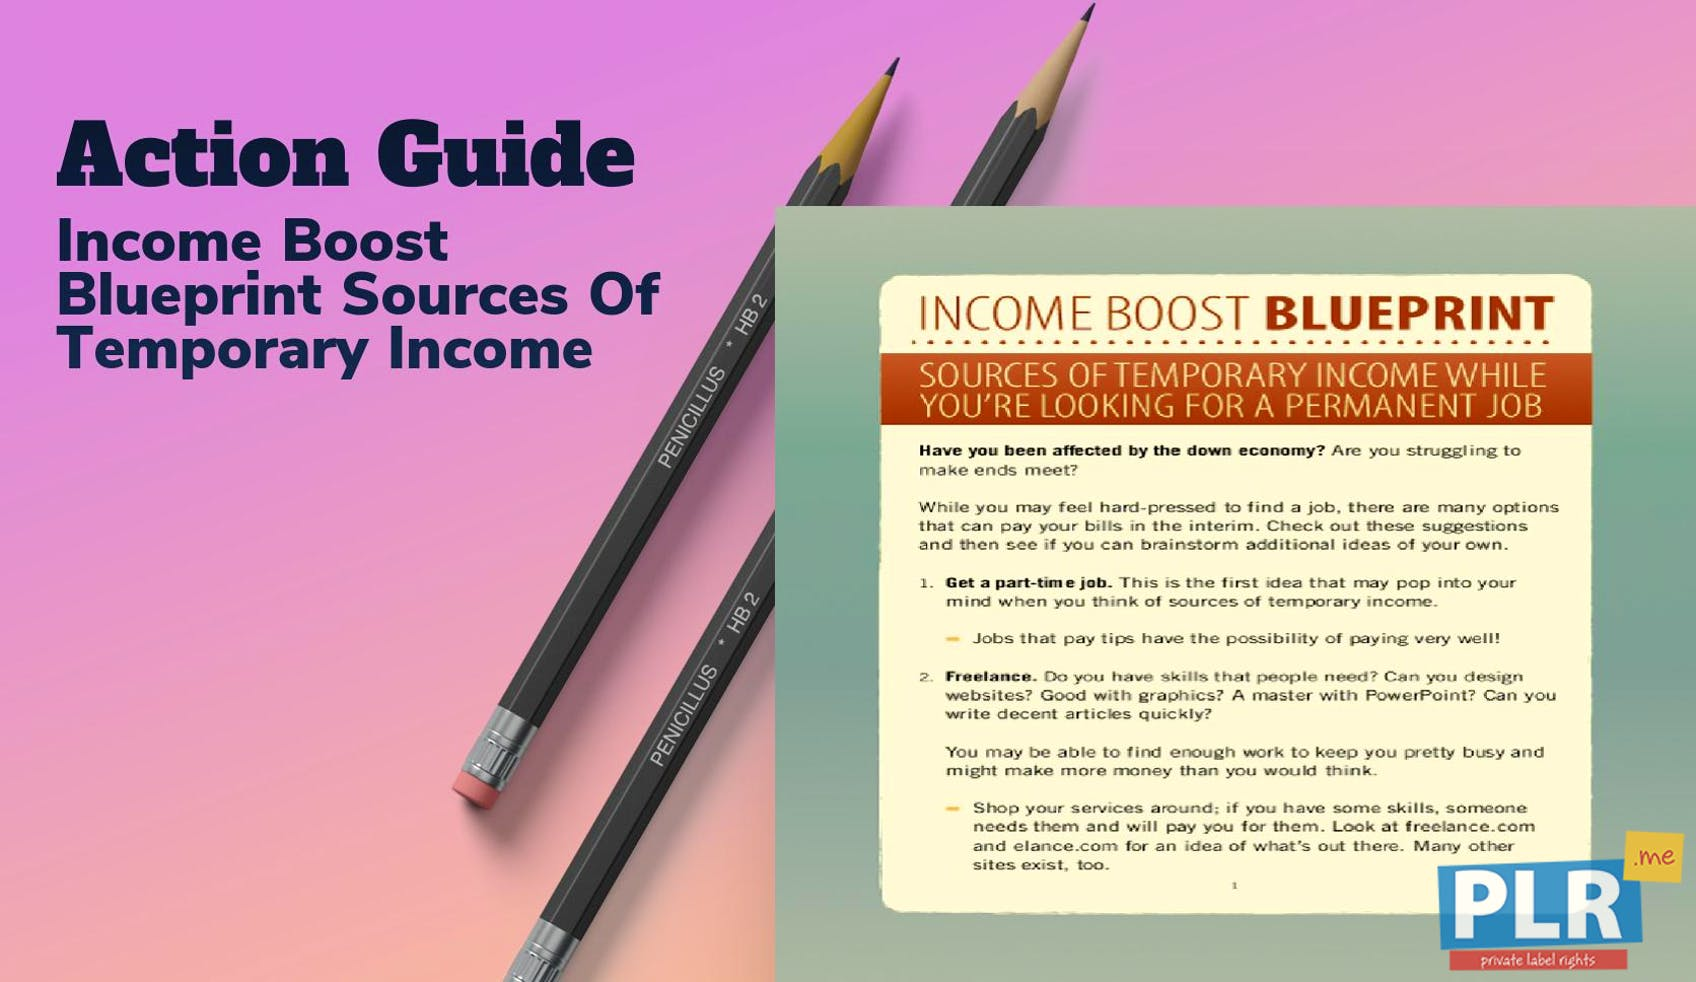 Income Boost Blueprint Sources Of Temporary Income